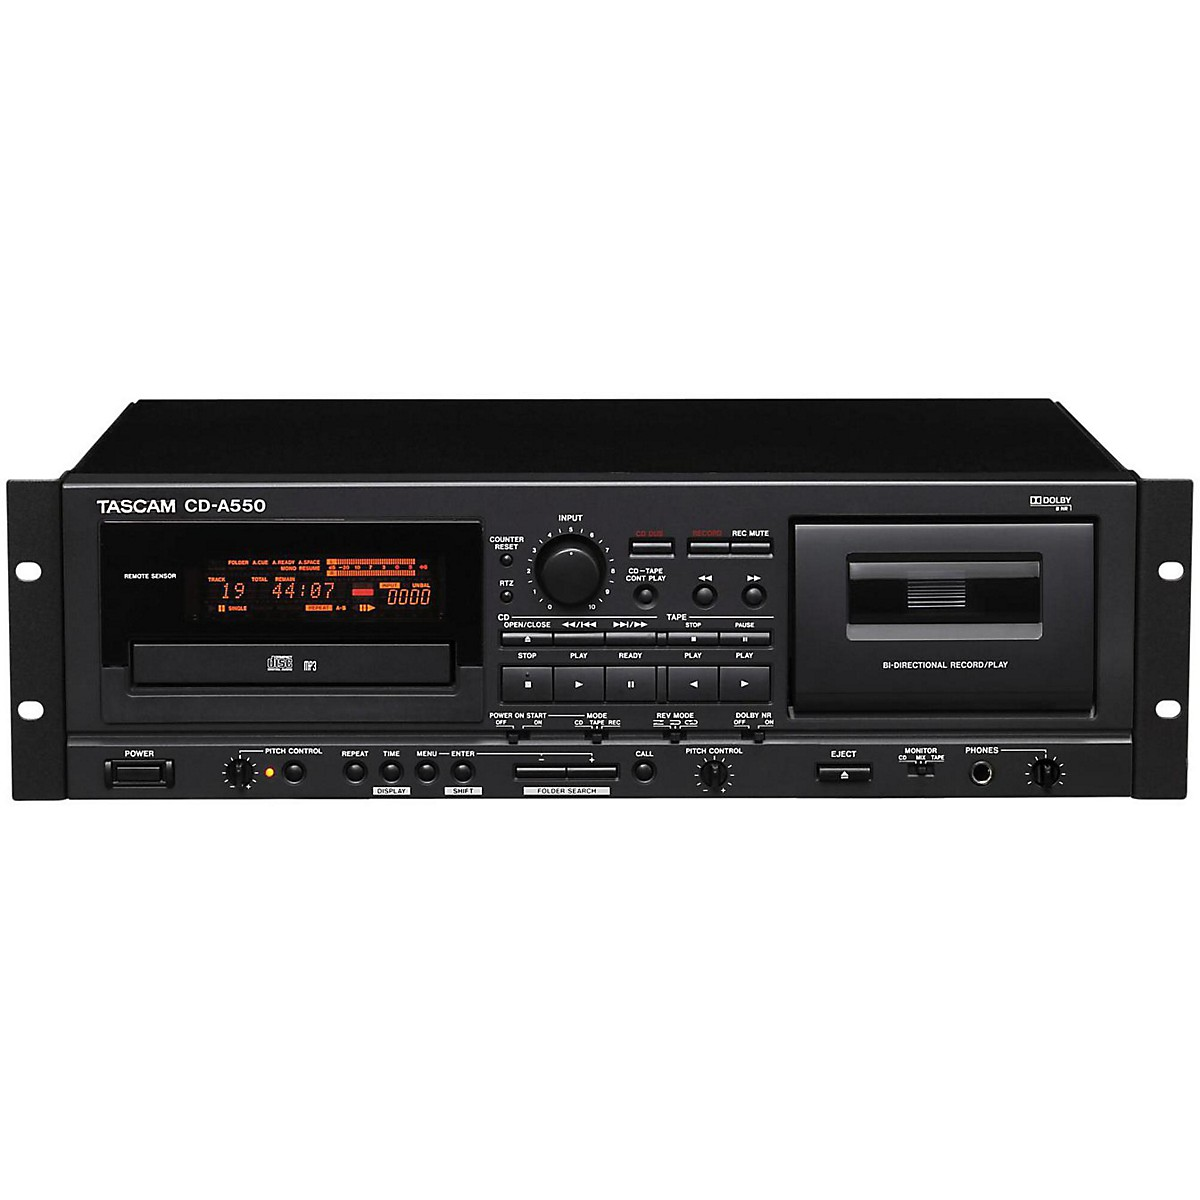 Tascam CD-A550 CD Player/Cassette Recorder